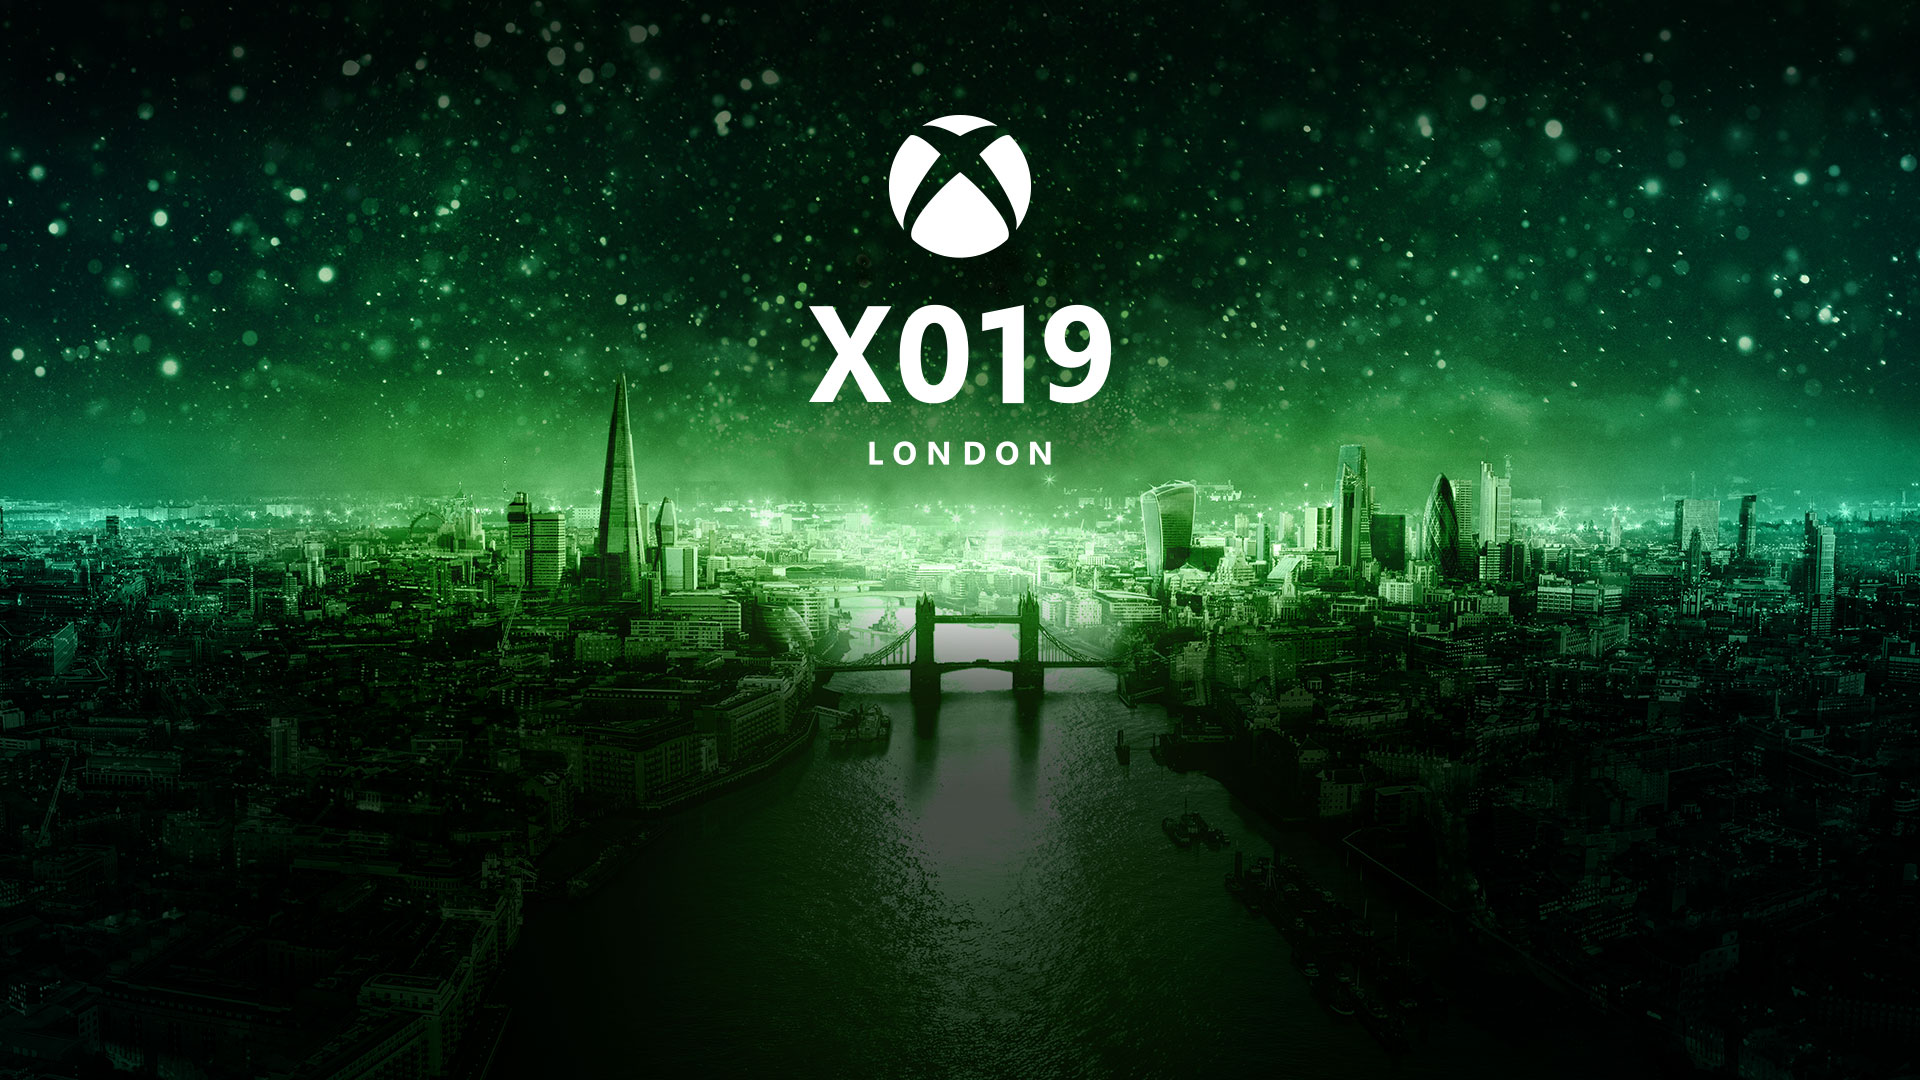 X019 London, a green-tinted image of London's cityscape with an Xbox logo over it